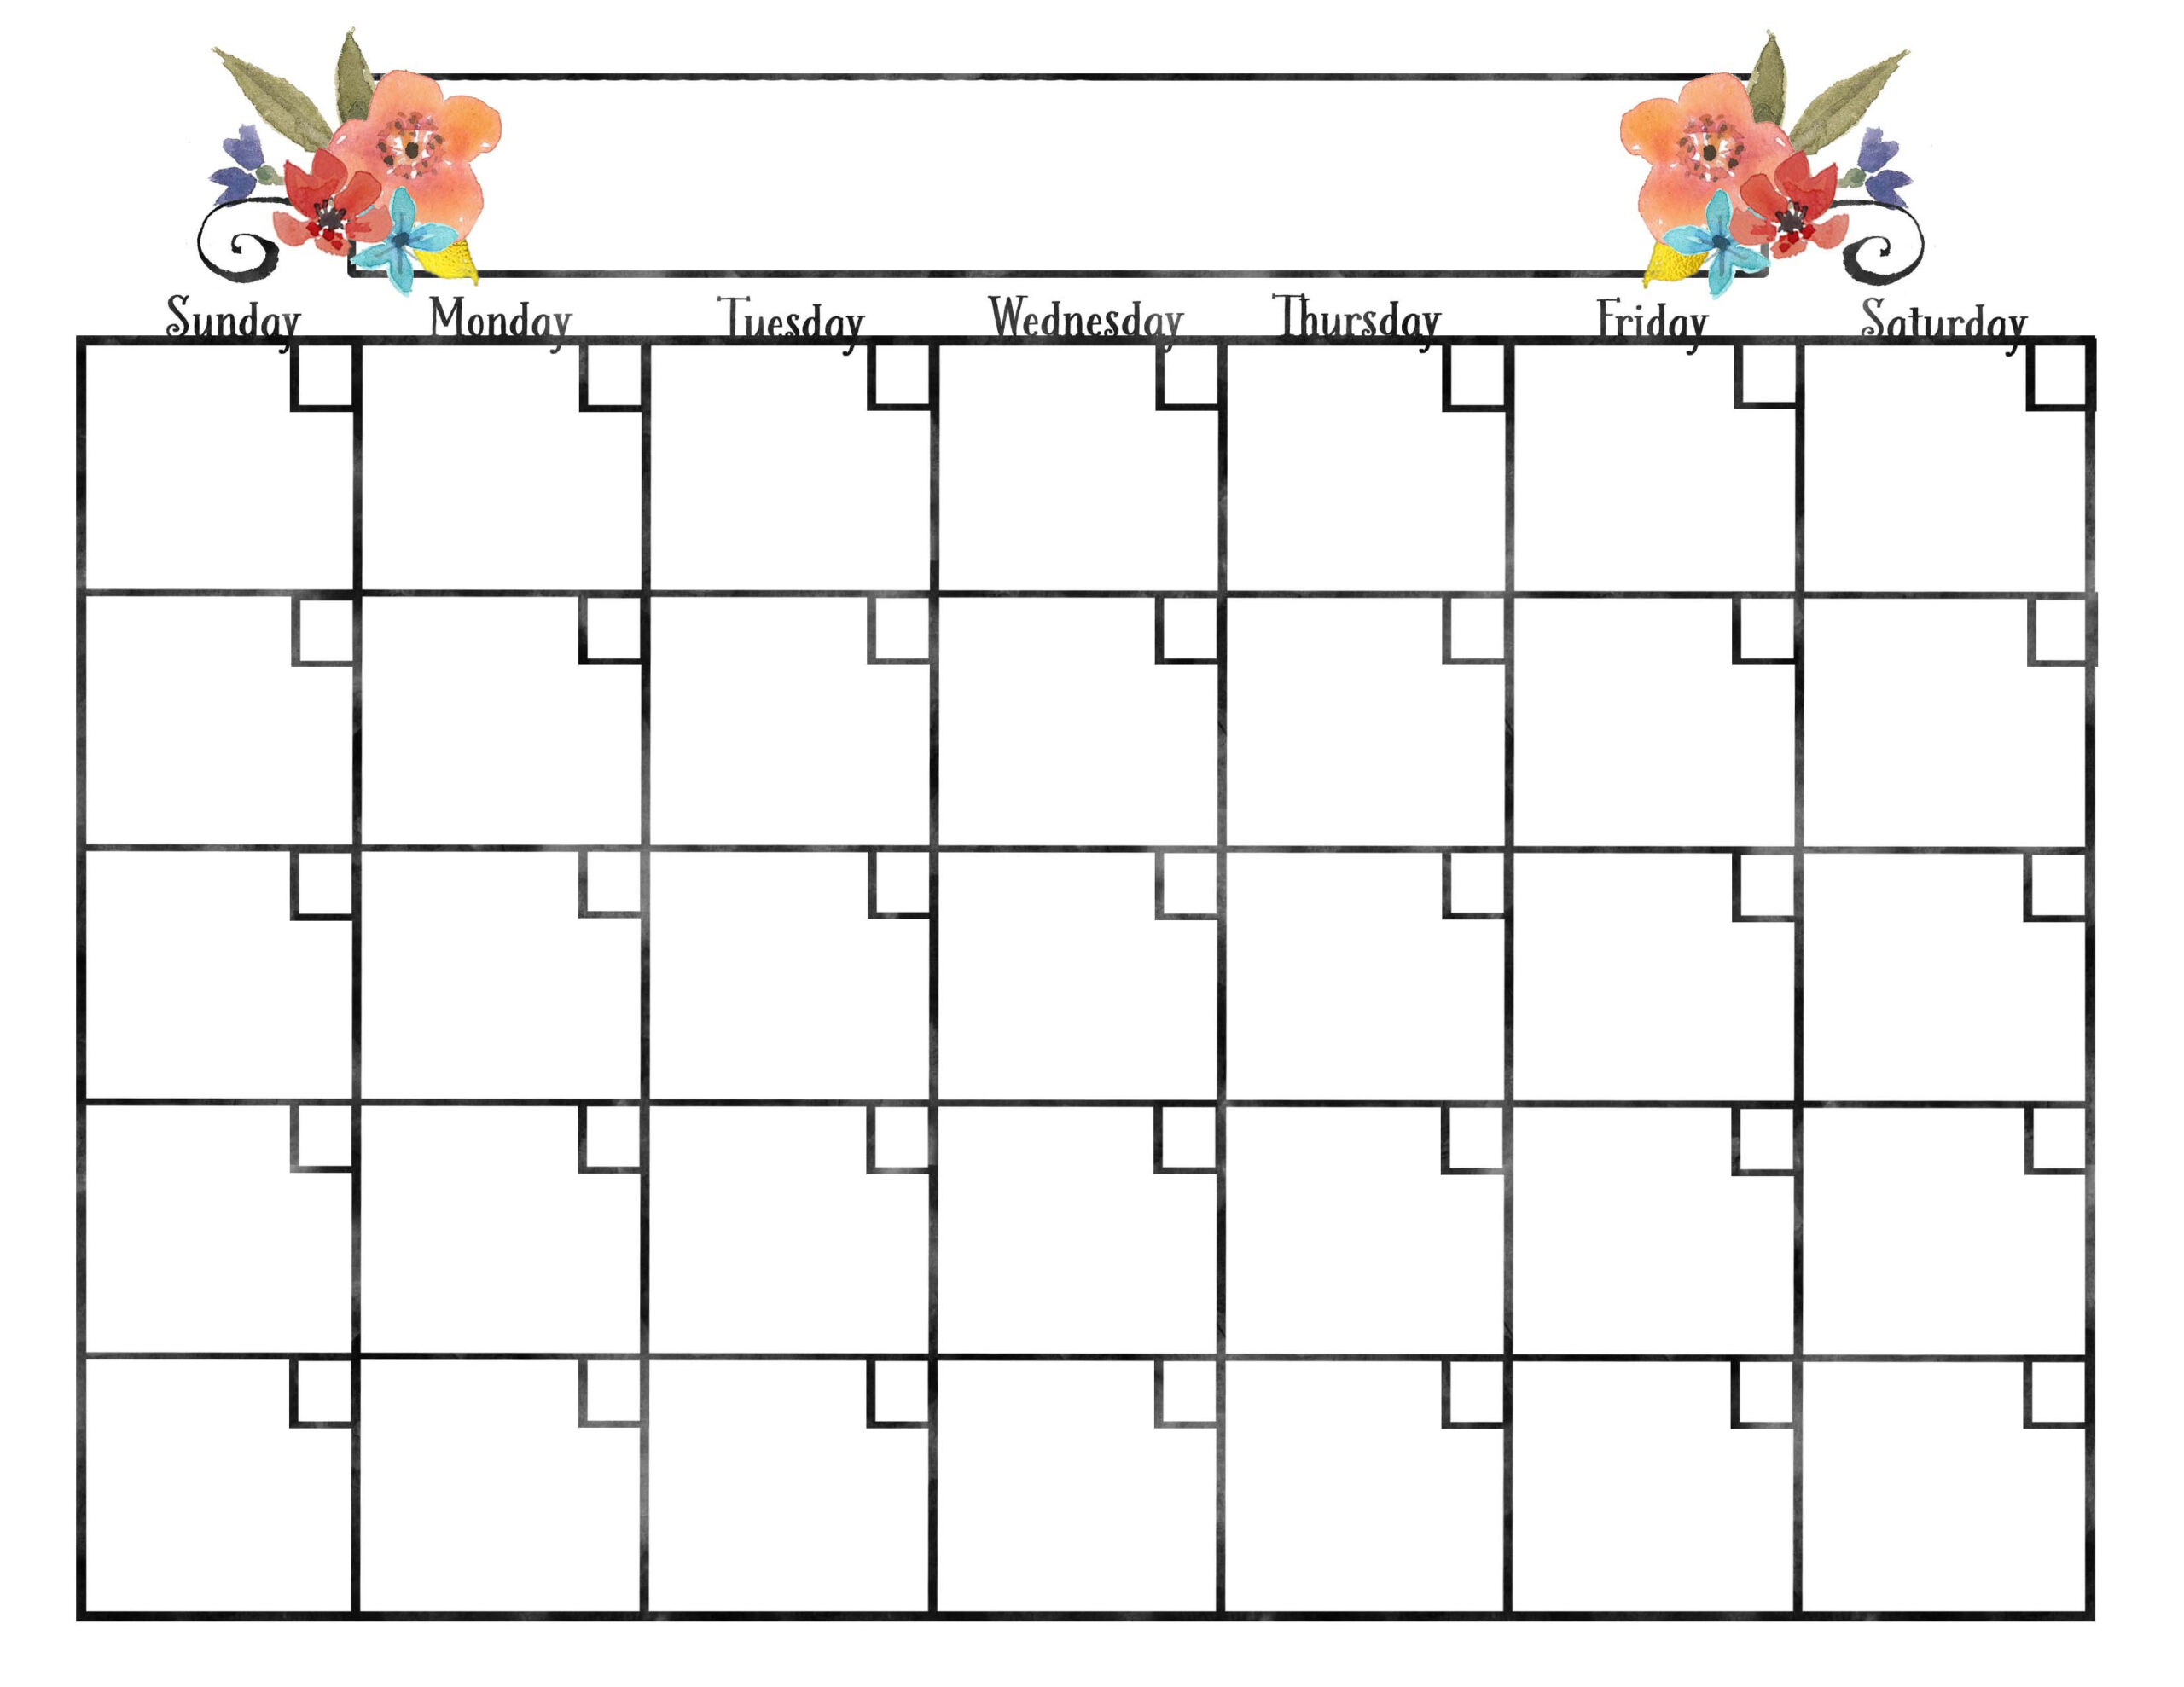 Monthly Calendars | Kkeeler  Calender Monthly Print Outs